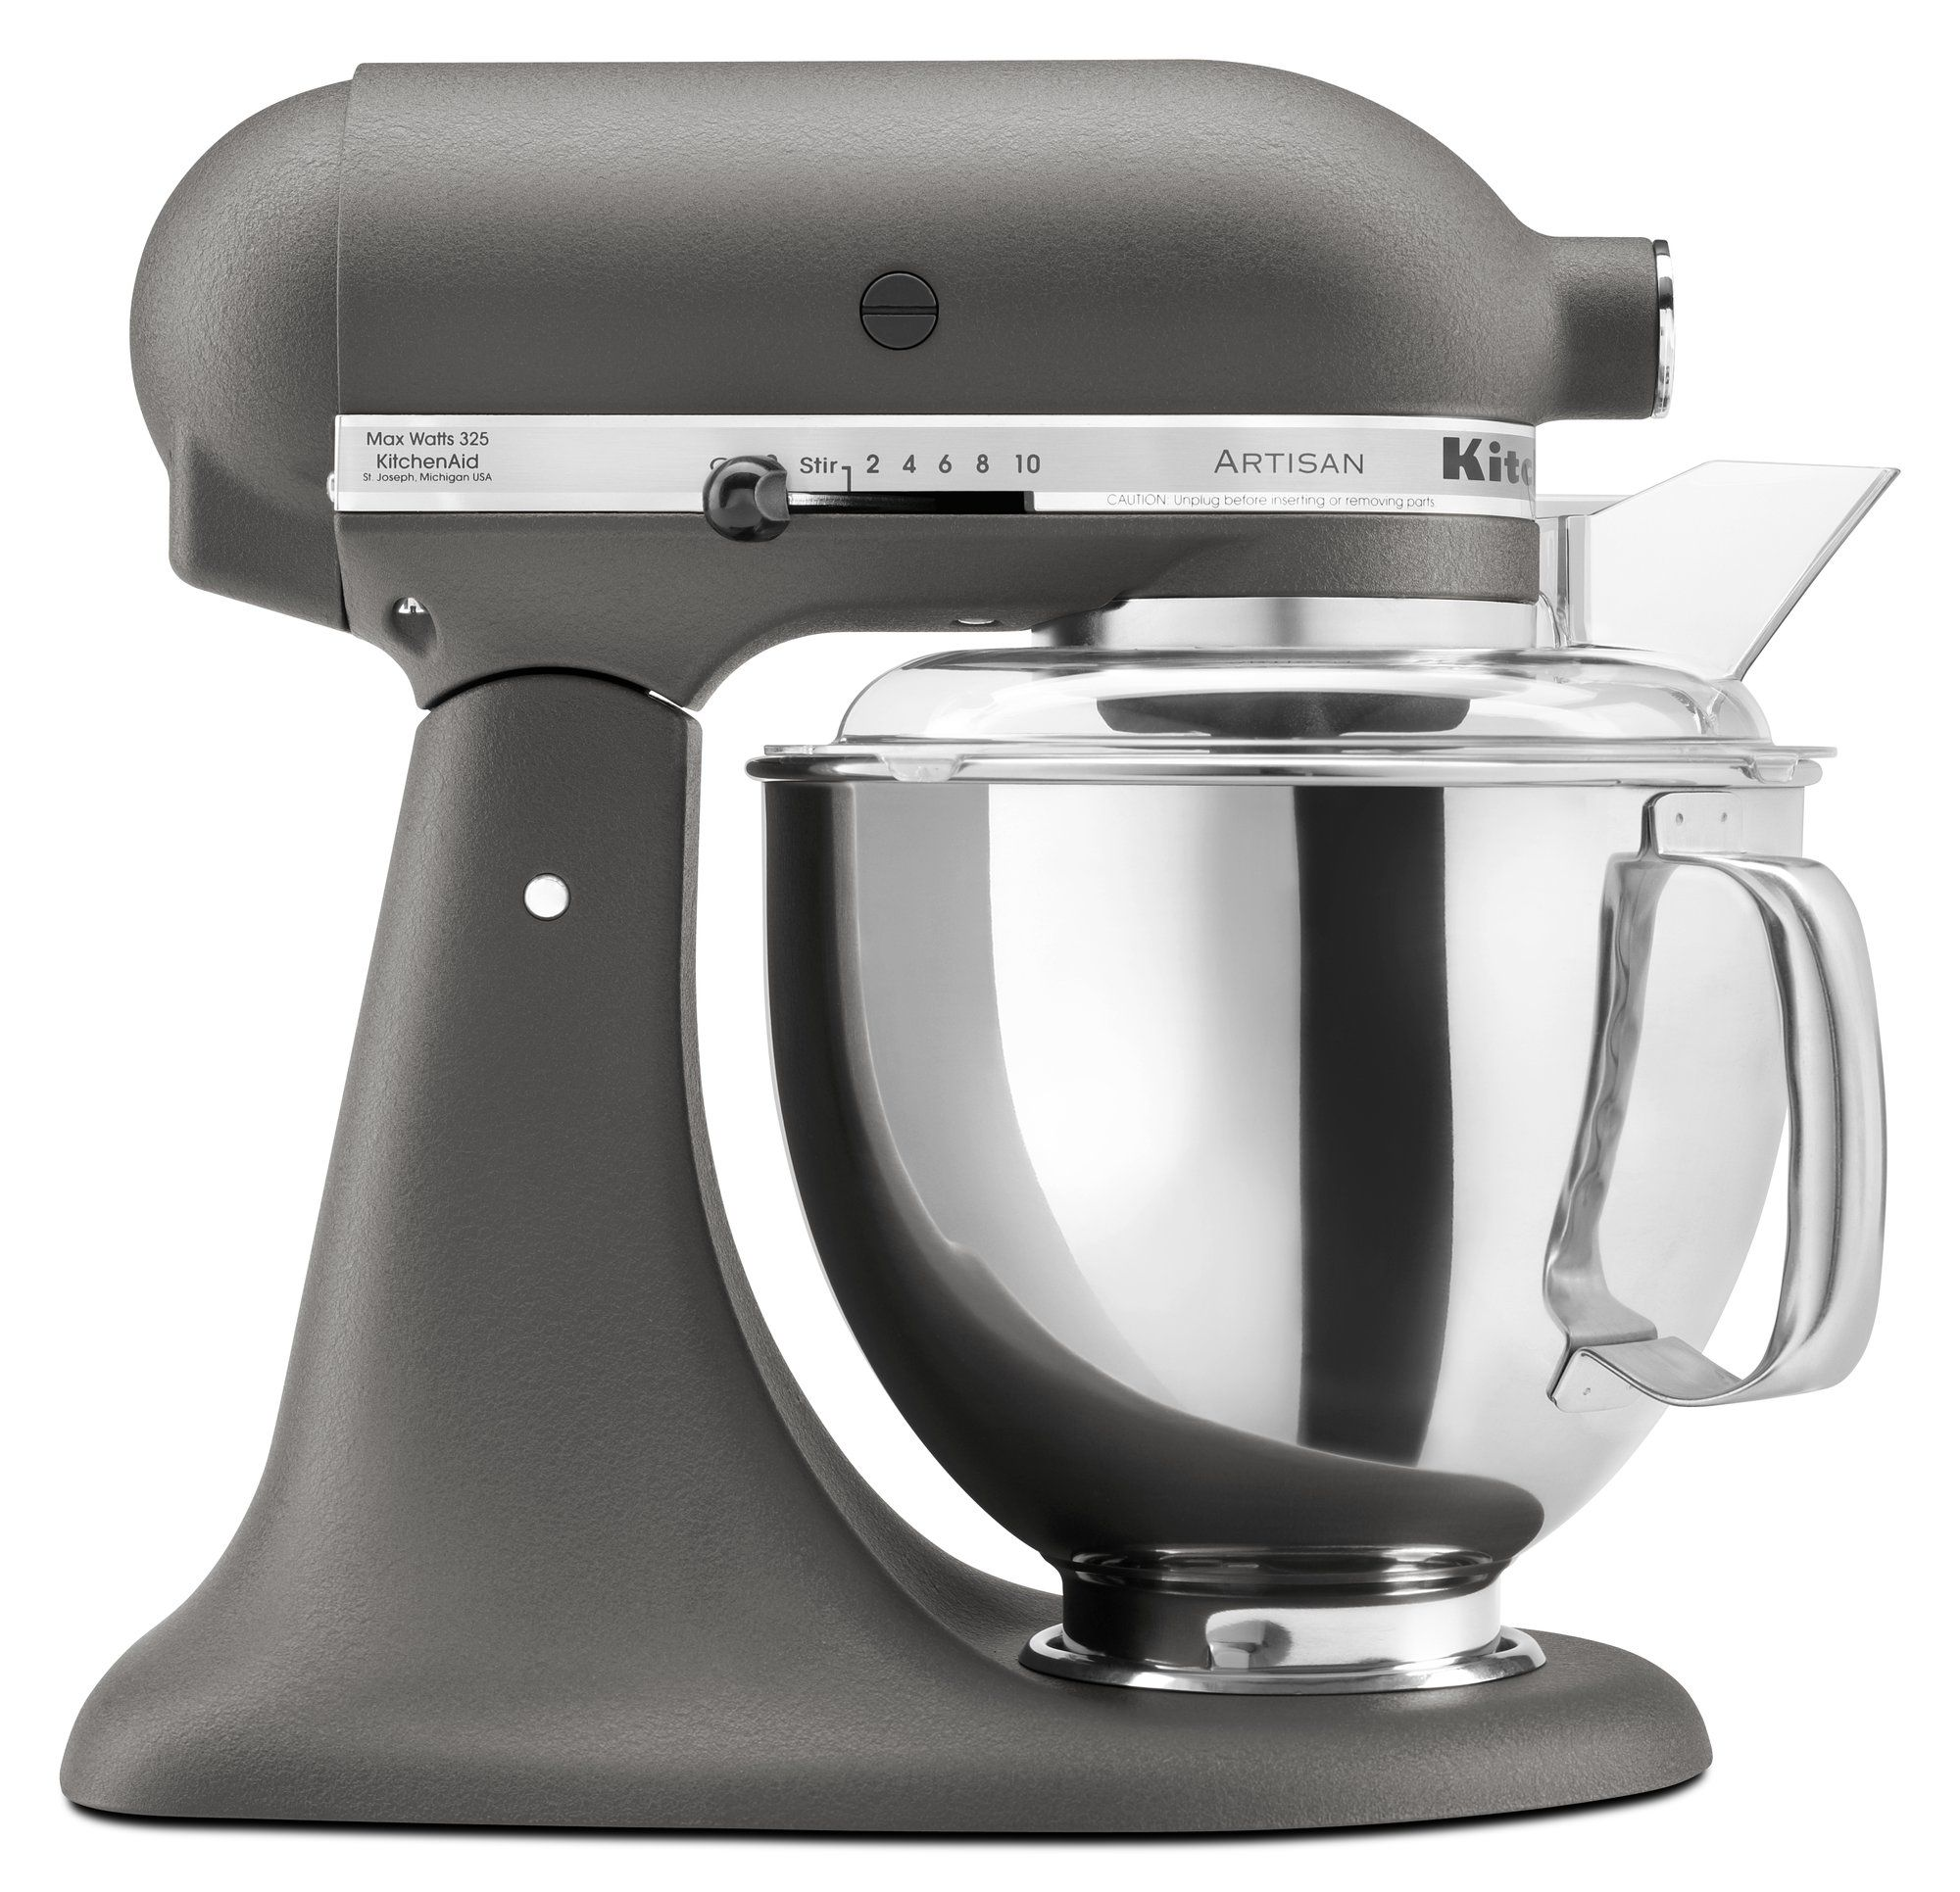 Kitchenaid artisan series 5 qt stand mixer with pouring